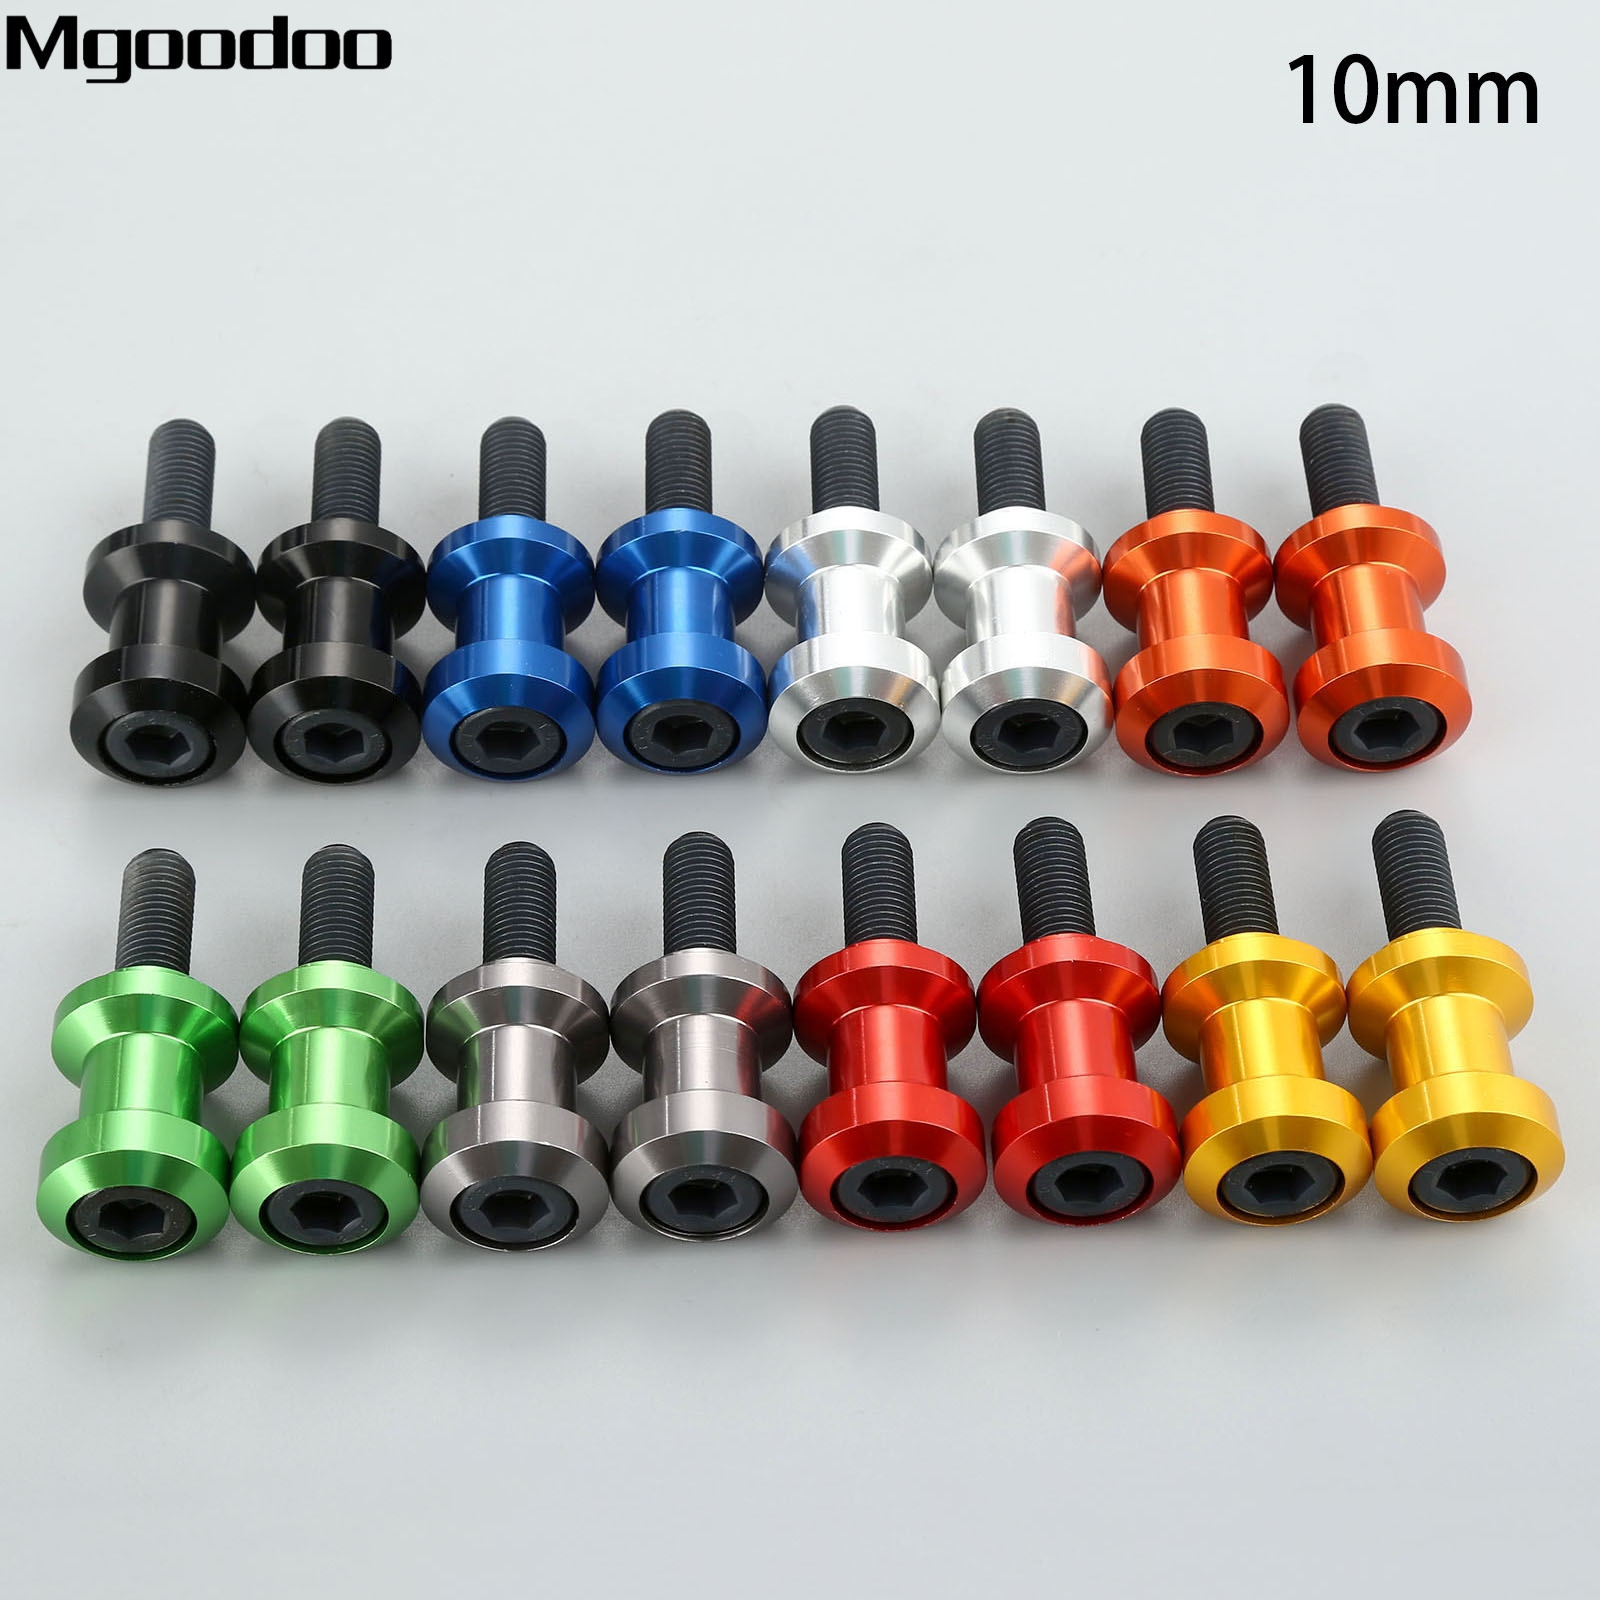 Mgoodoo CNC Aluminium 10mm Motorcycle Swingarm Spools Sliders For Yamaha YZF750/1000 FZR400/600/1000 KTM 690 990 Duke 1190 RC8 high heeled shoes forefoot pad silica gel half yard pad transparent insole thickening slip resistant pad